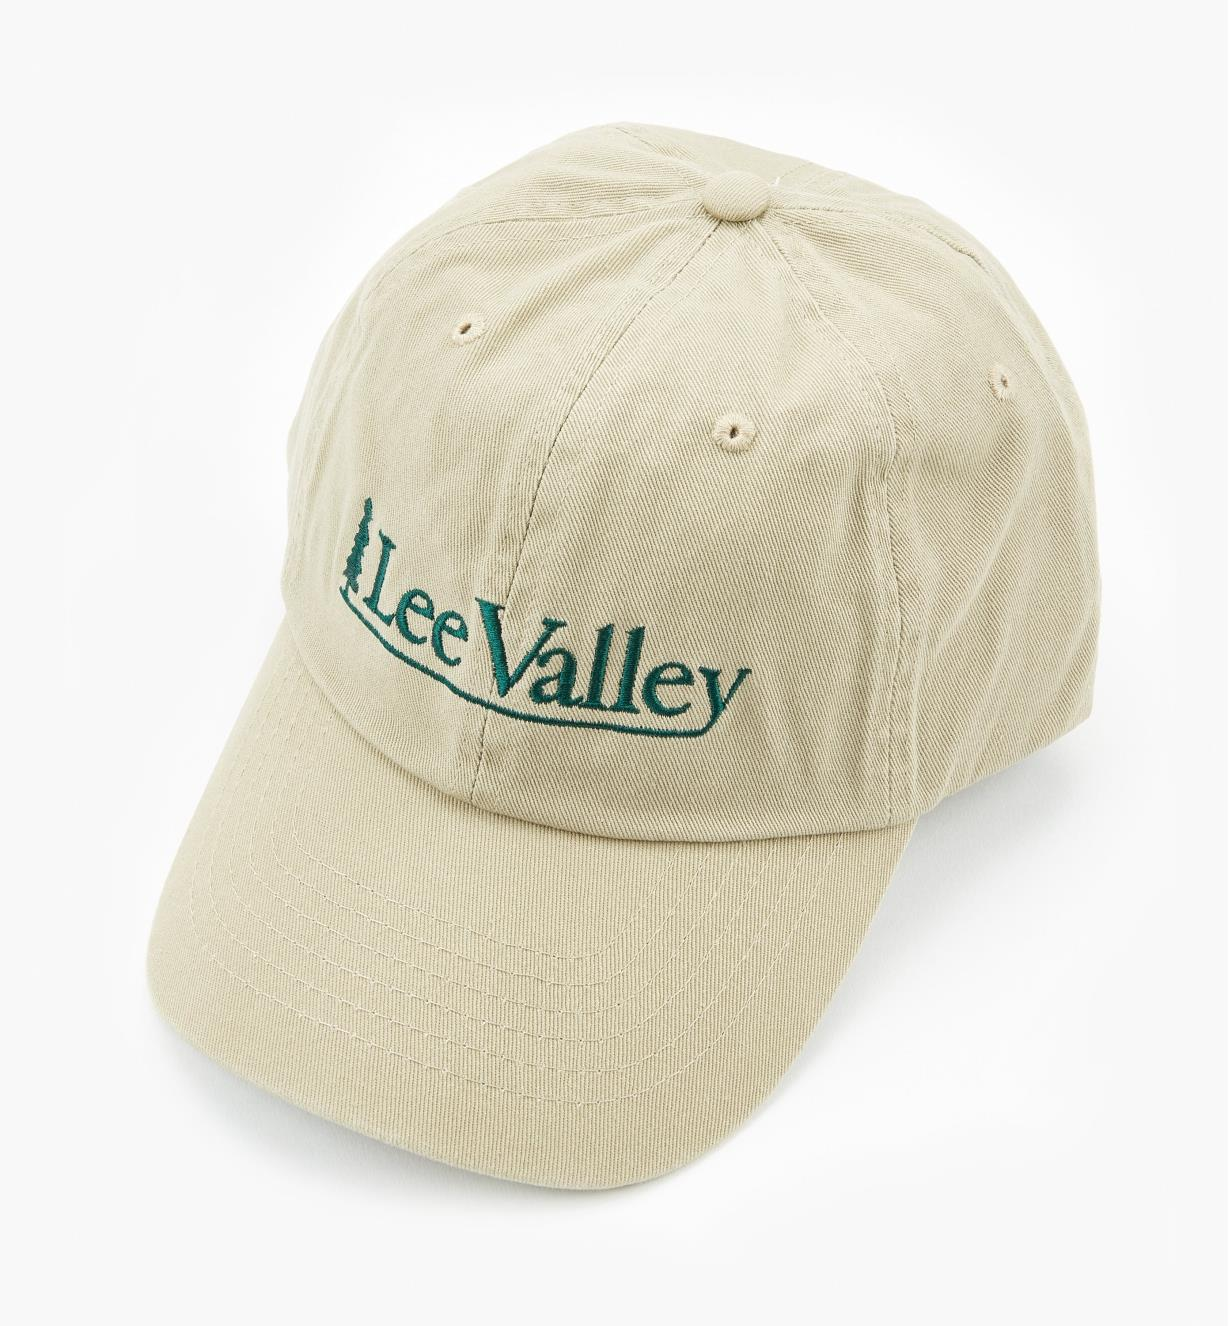 67K9921 - Lee Valley Baseball Cap, Khaki